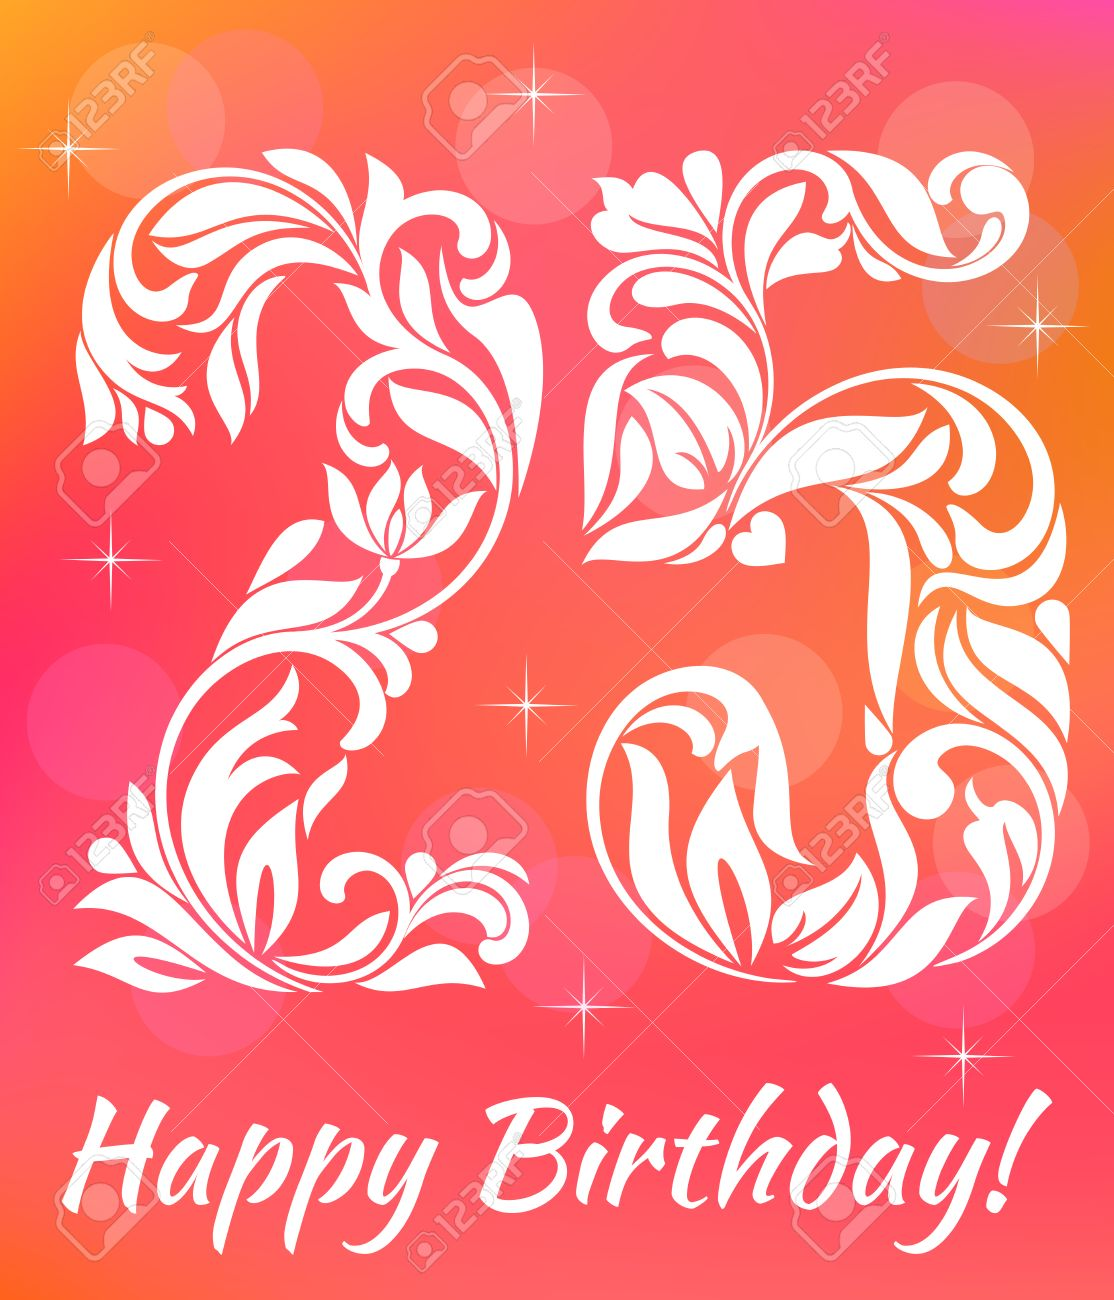 Bright Greeting Card Invitation Template Celebrating 25 Years Birthday Decorative Font With Swirls And